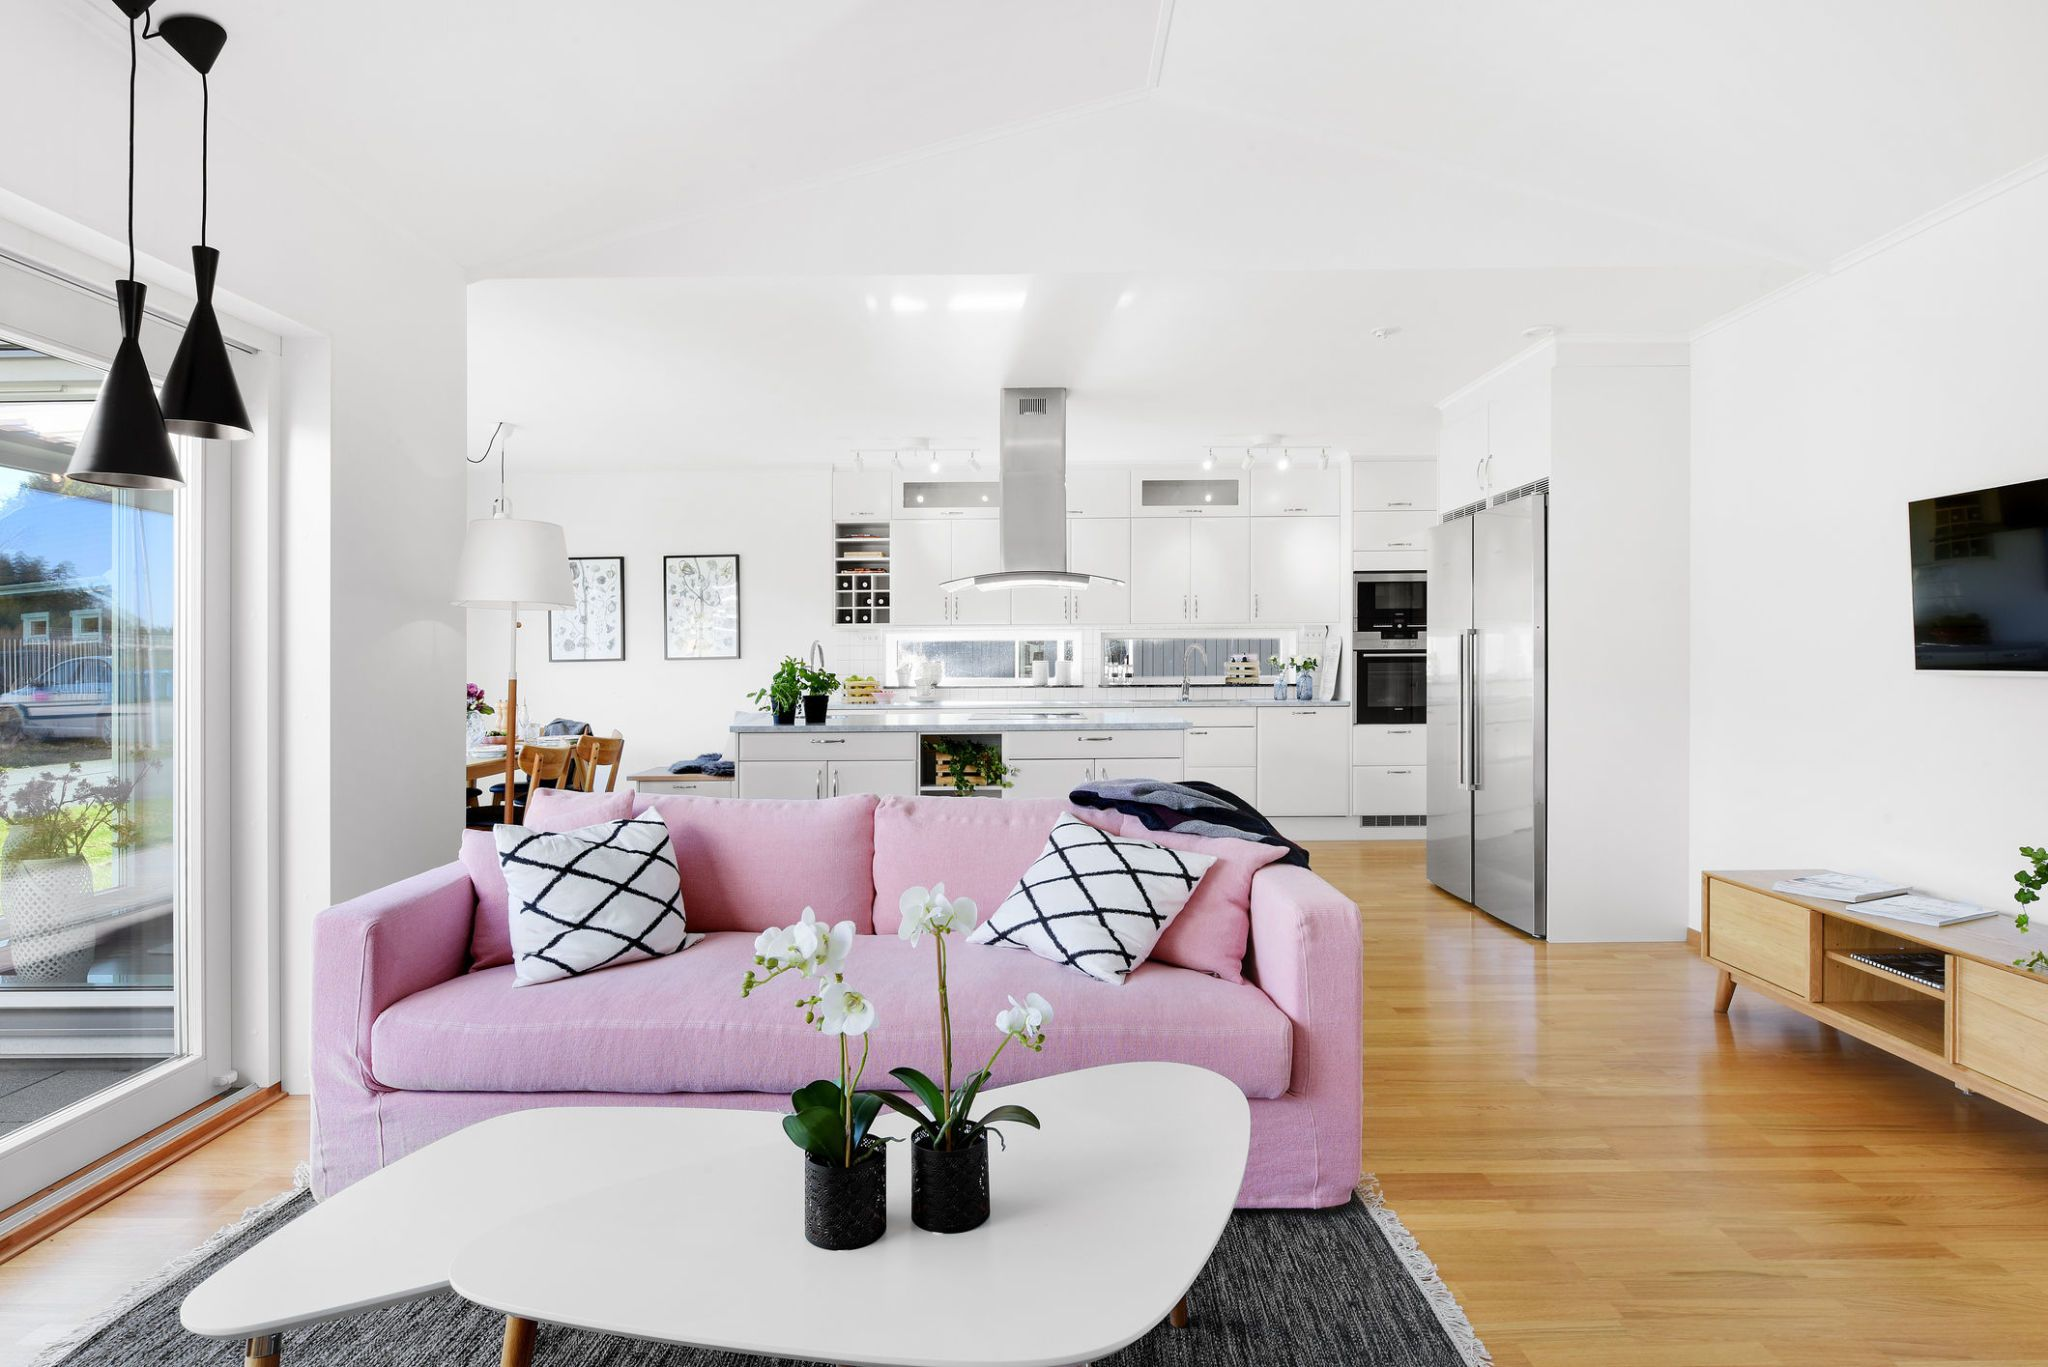 Interior of modern living room with pink sofa & How to plan a room layout and make the best use of space